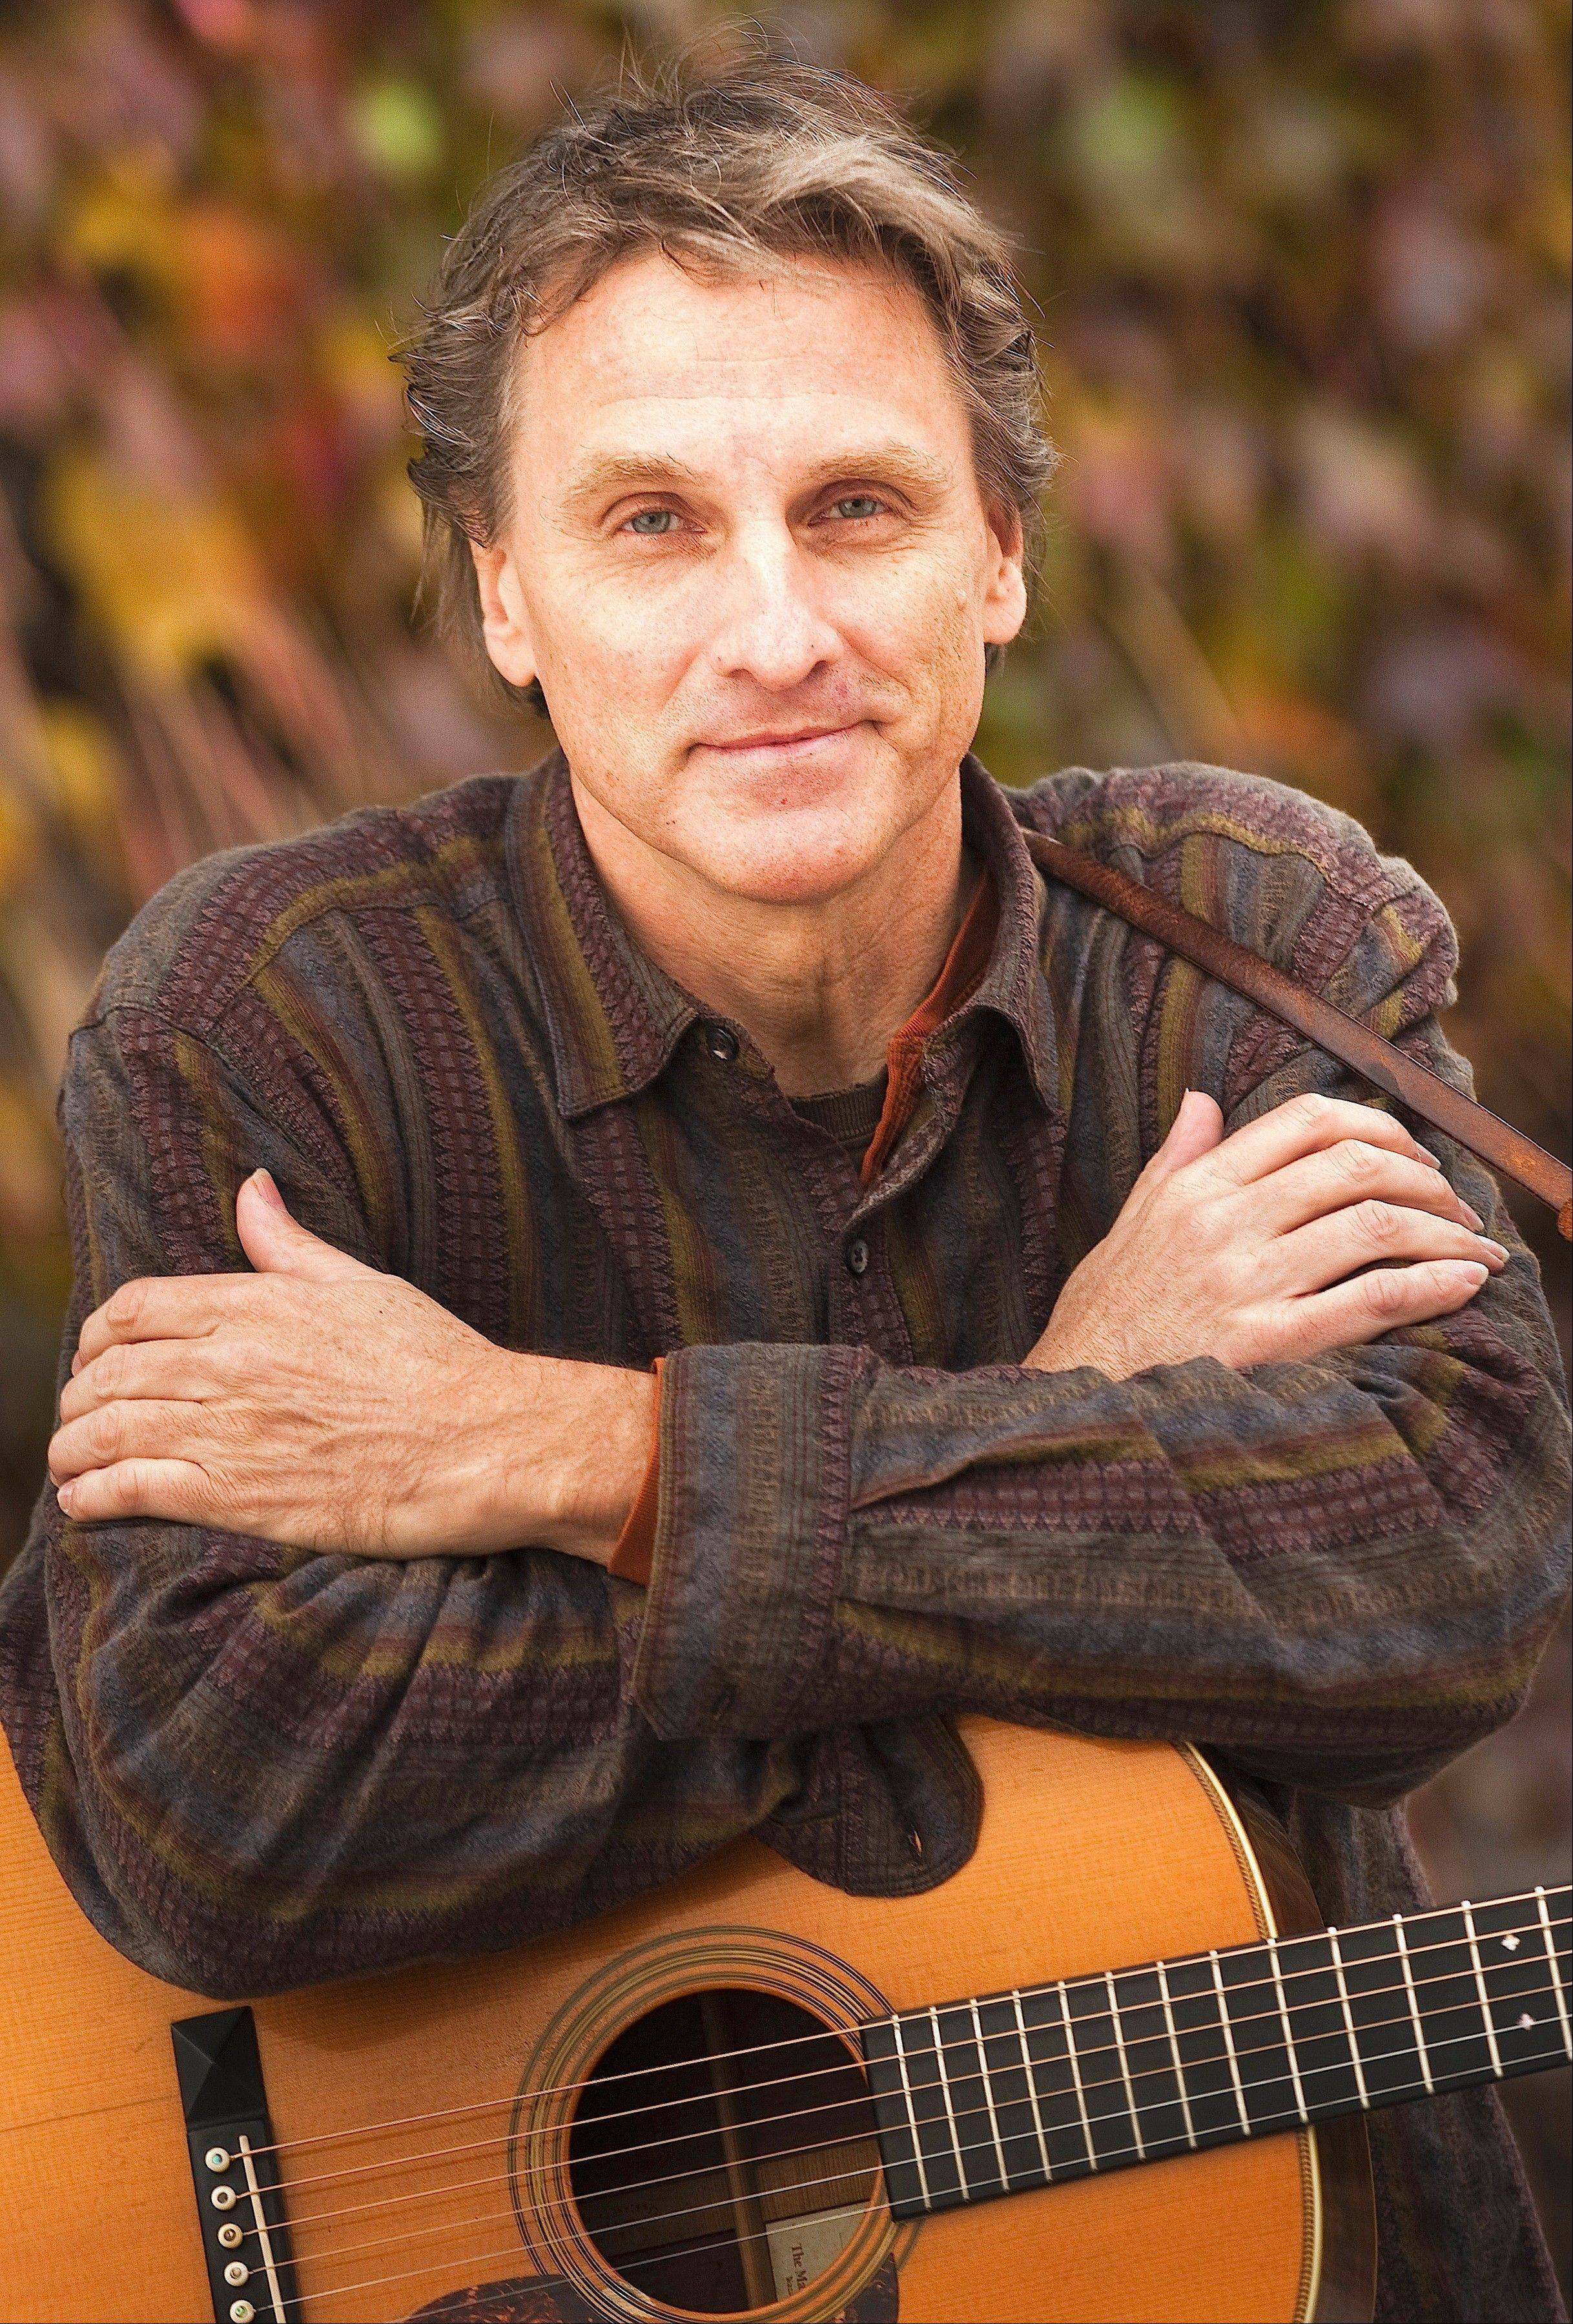 Folk performer Mark Dvorak appears at The House Pub in St. Charles on Sunday, July 7.